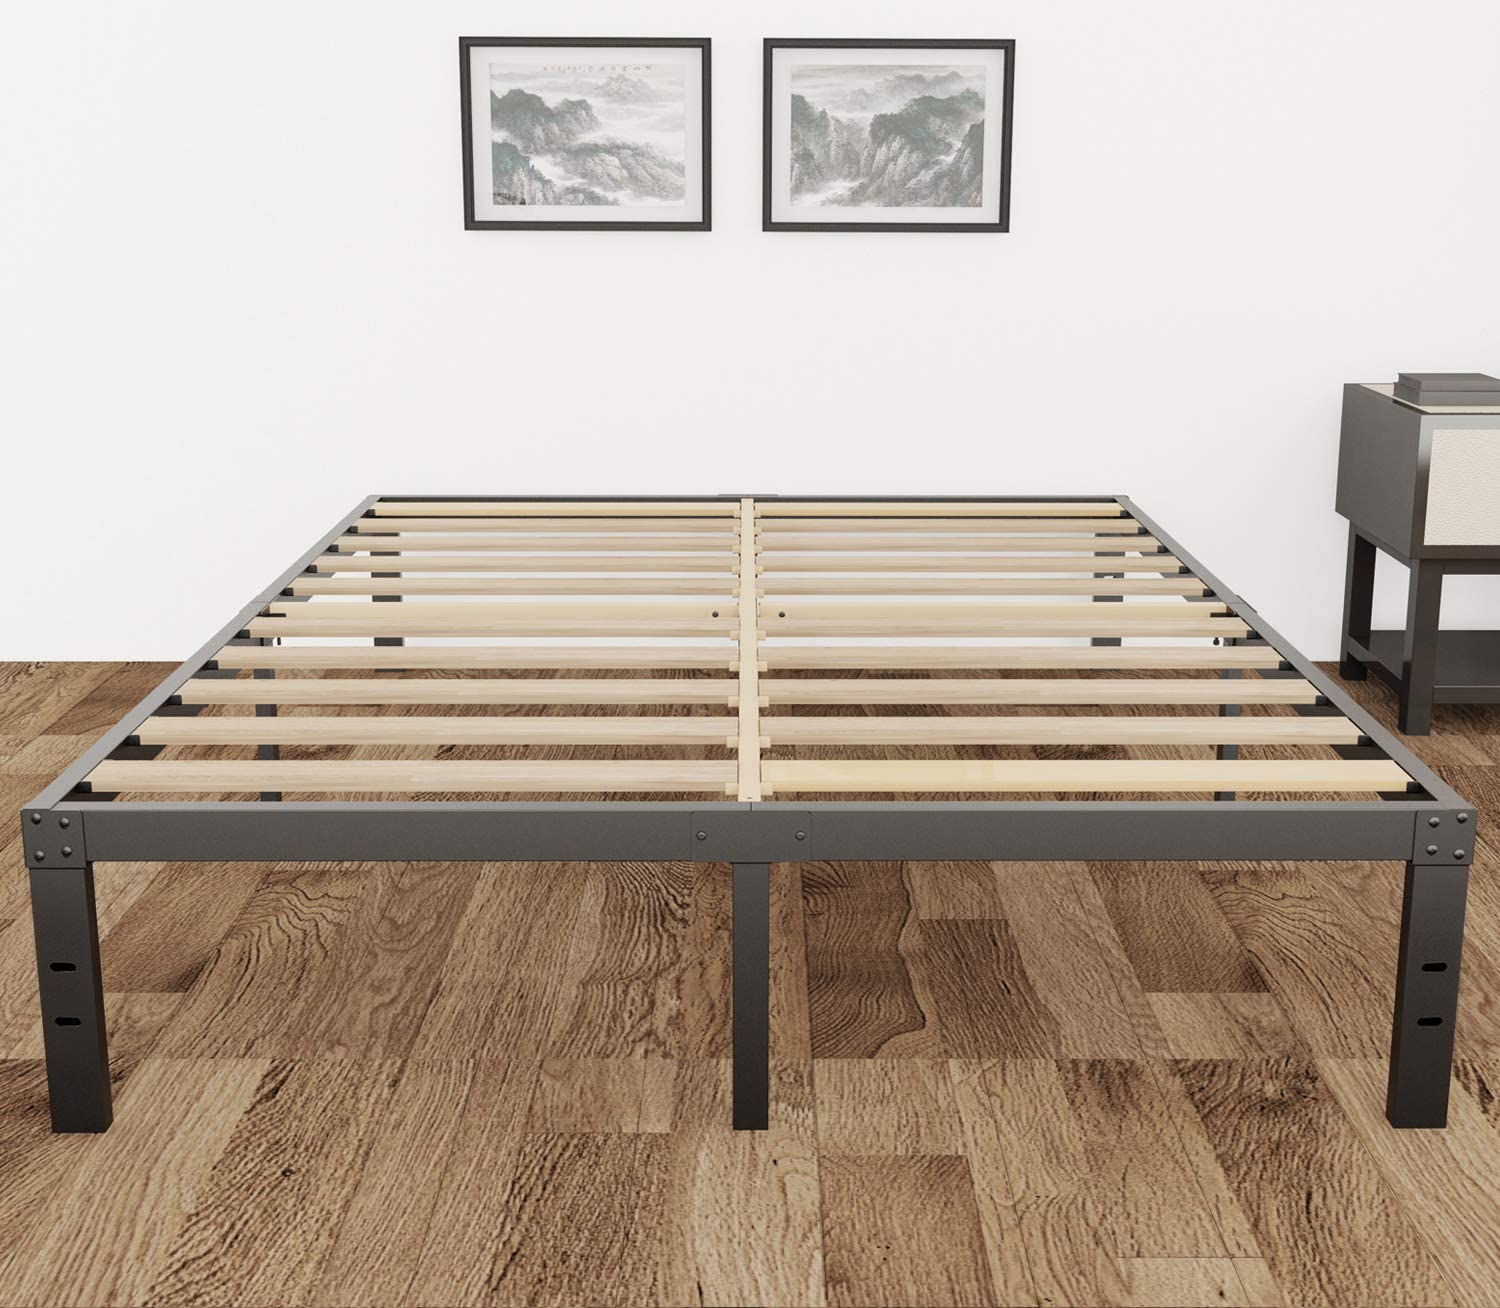 3800lbs Heavy Duty Max 48% Cheap super special price OFF 14 Inch Steel Reinforce Slat Support Wooden